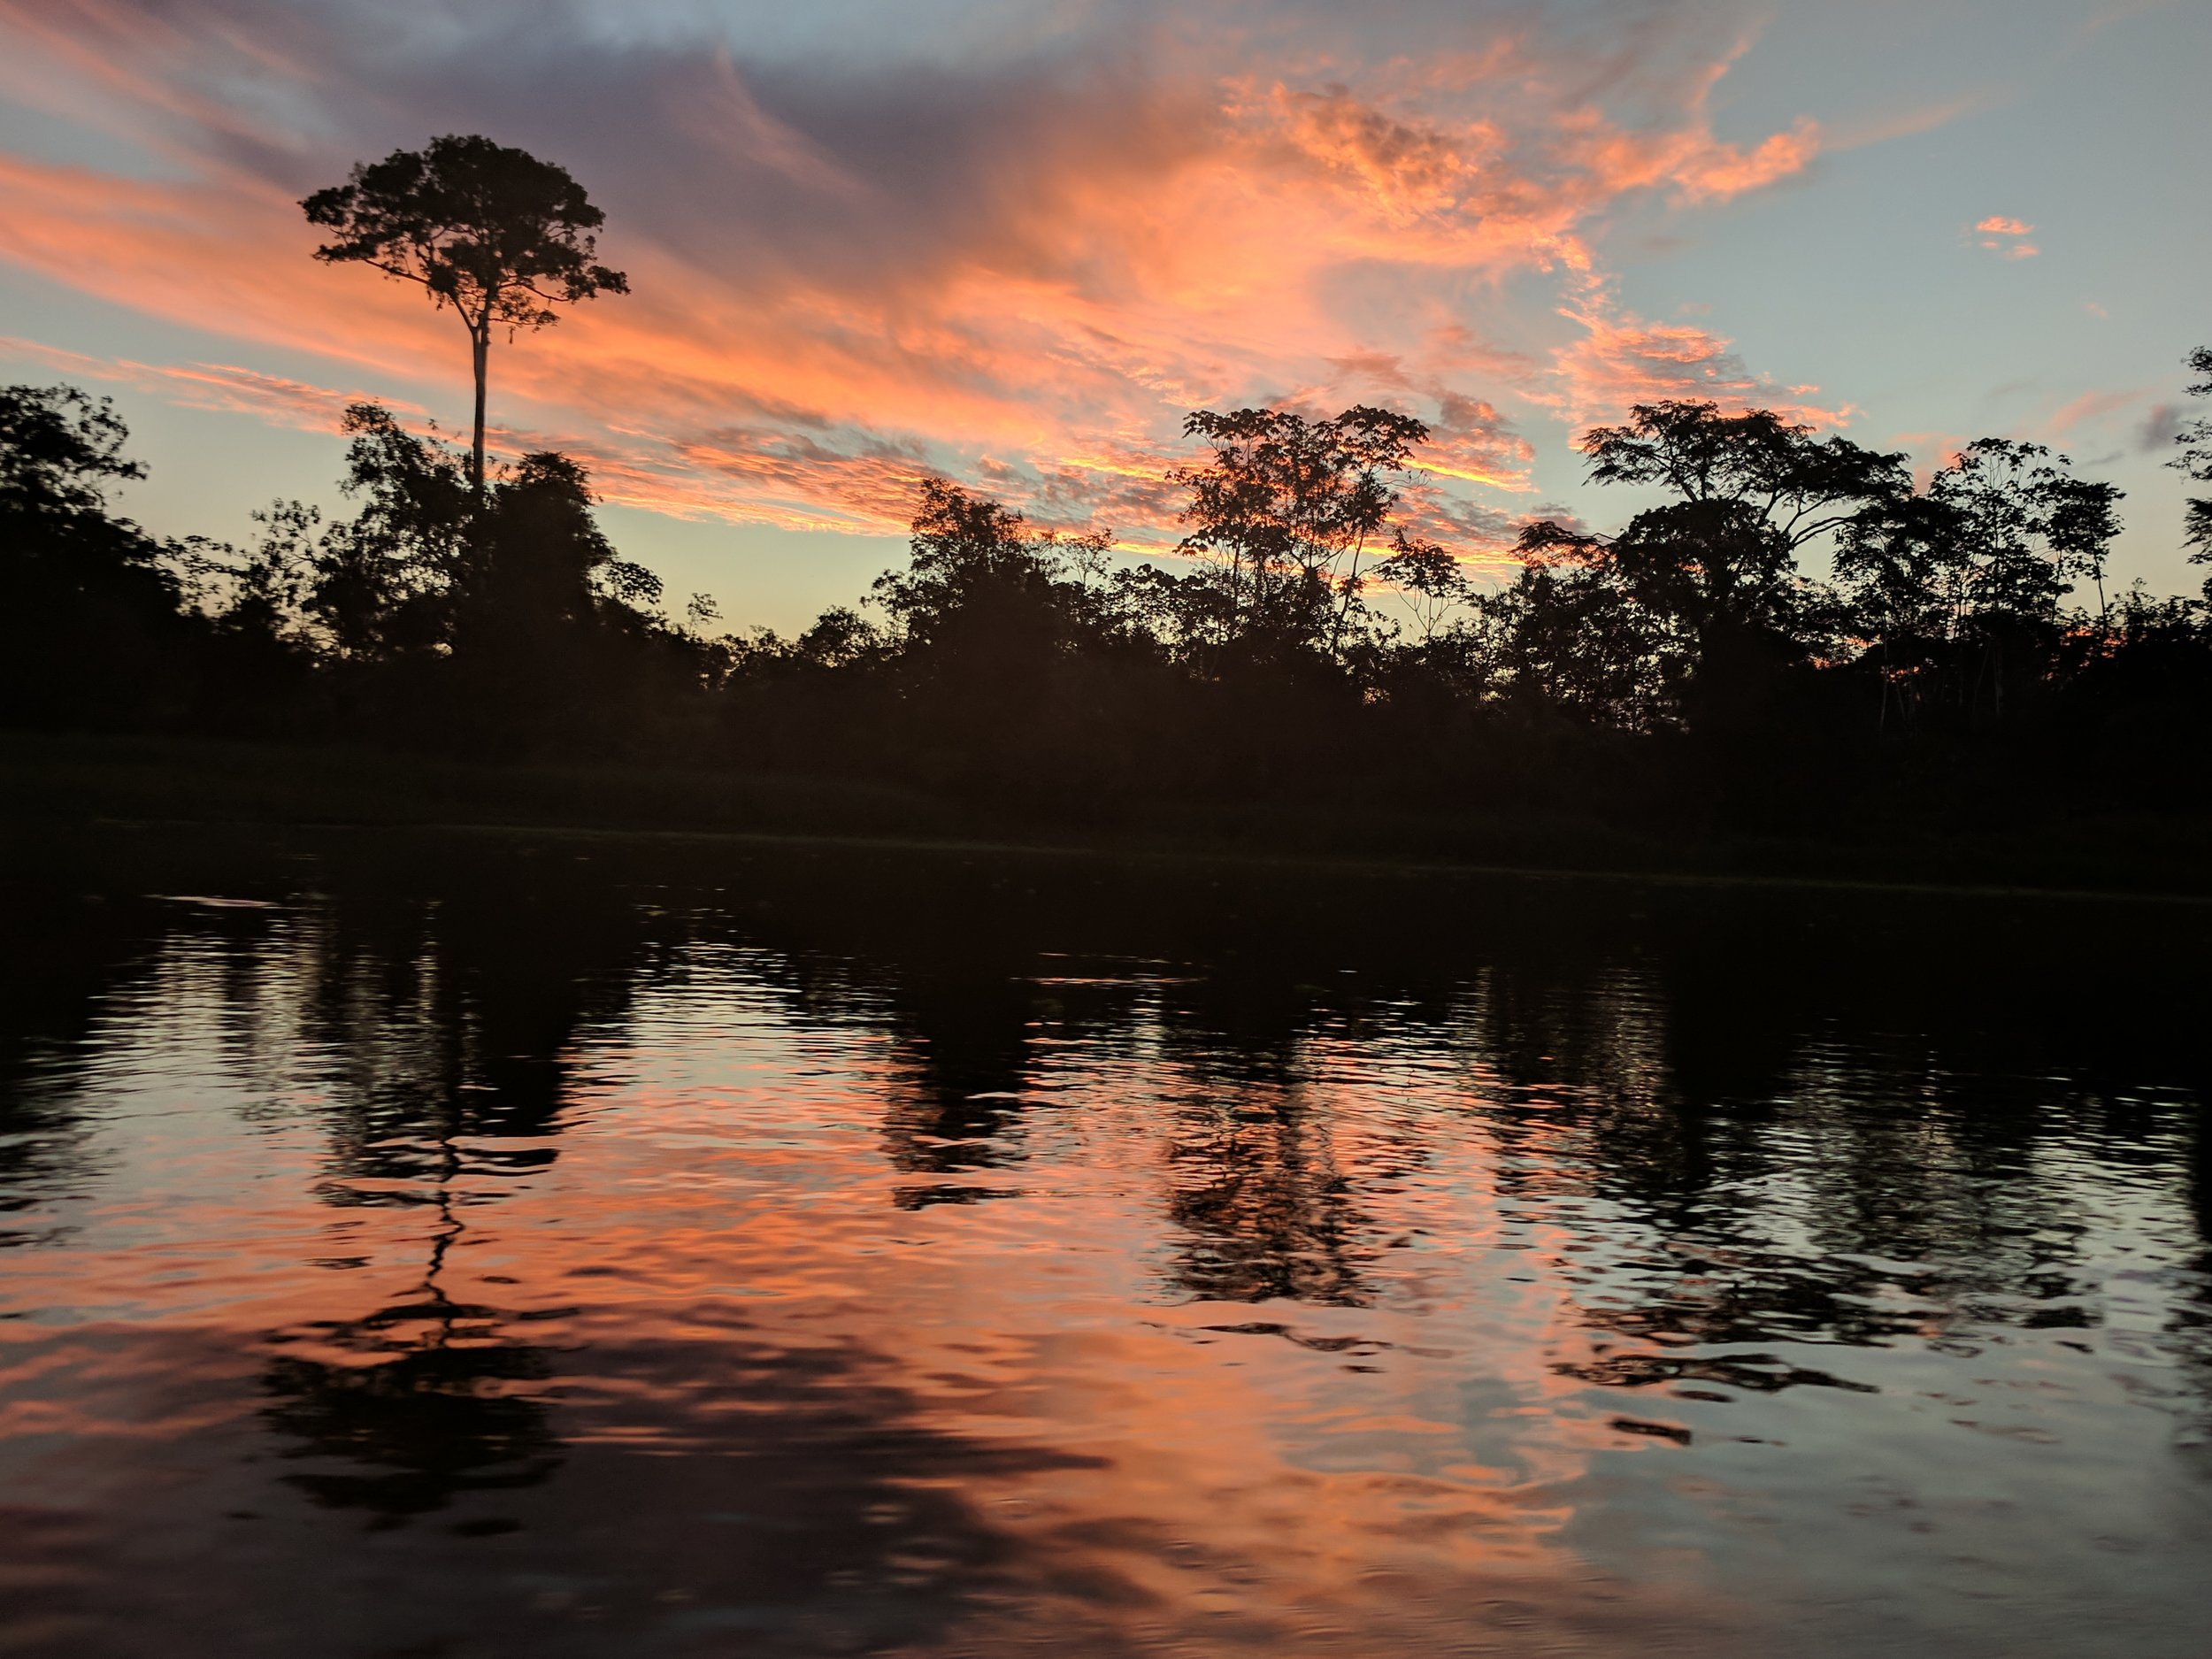 Sunset over the canal leading to our Amazon lodge